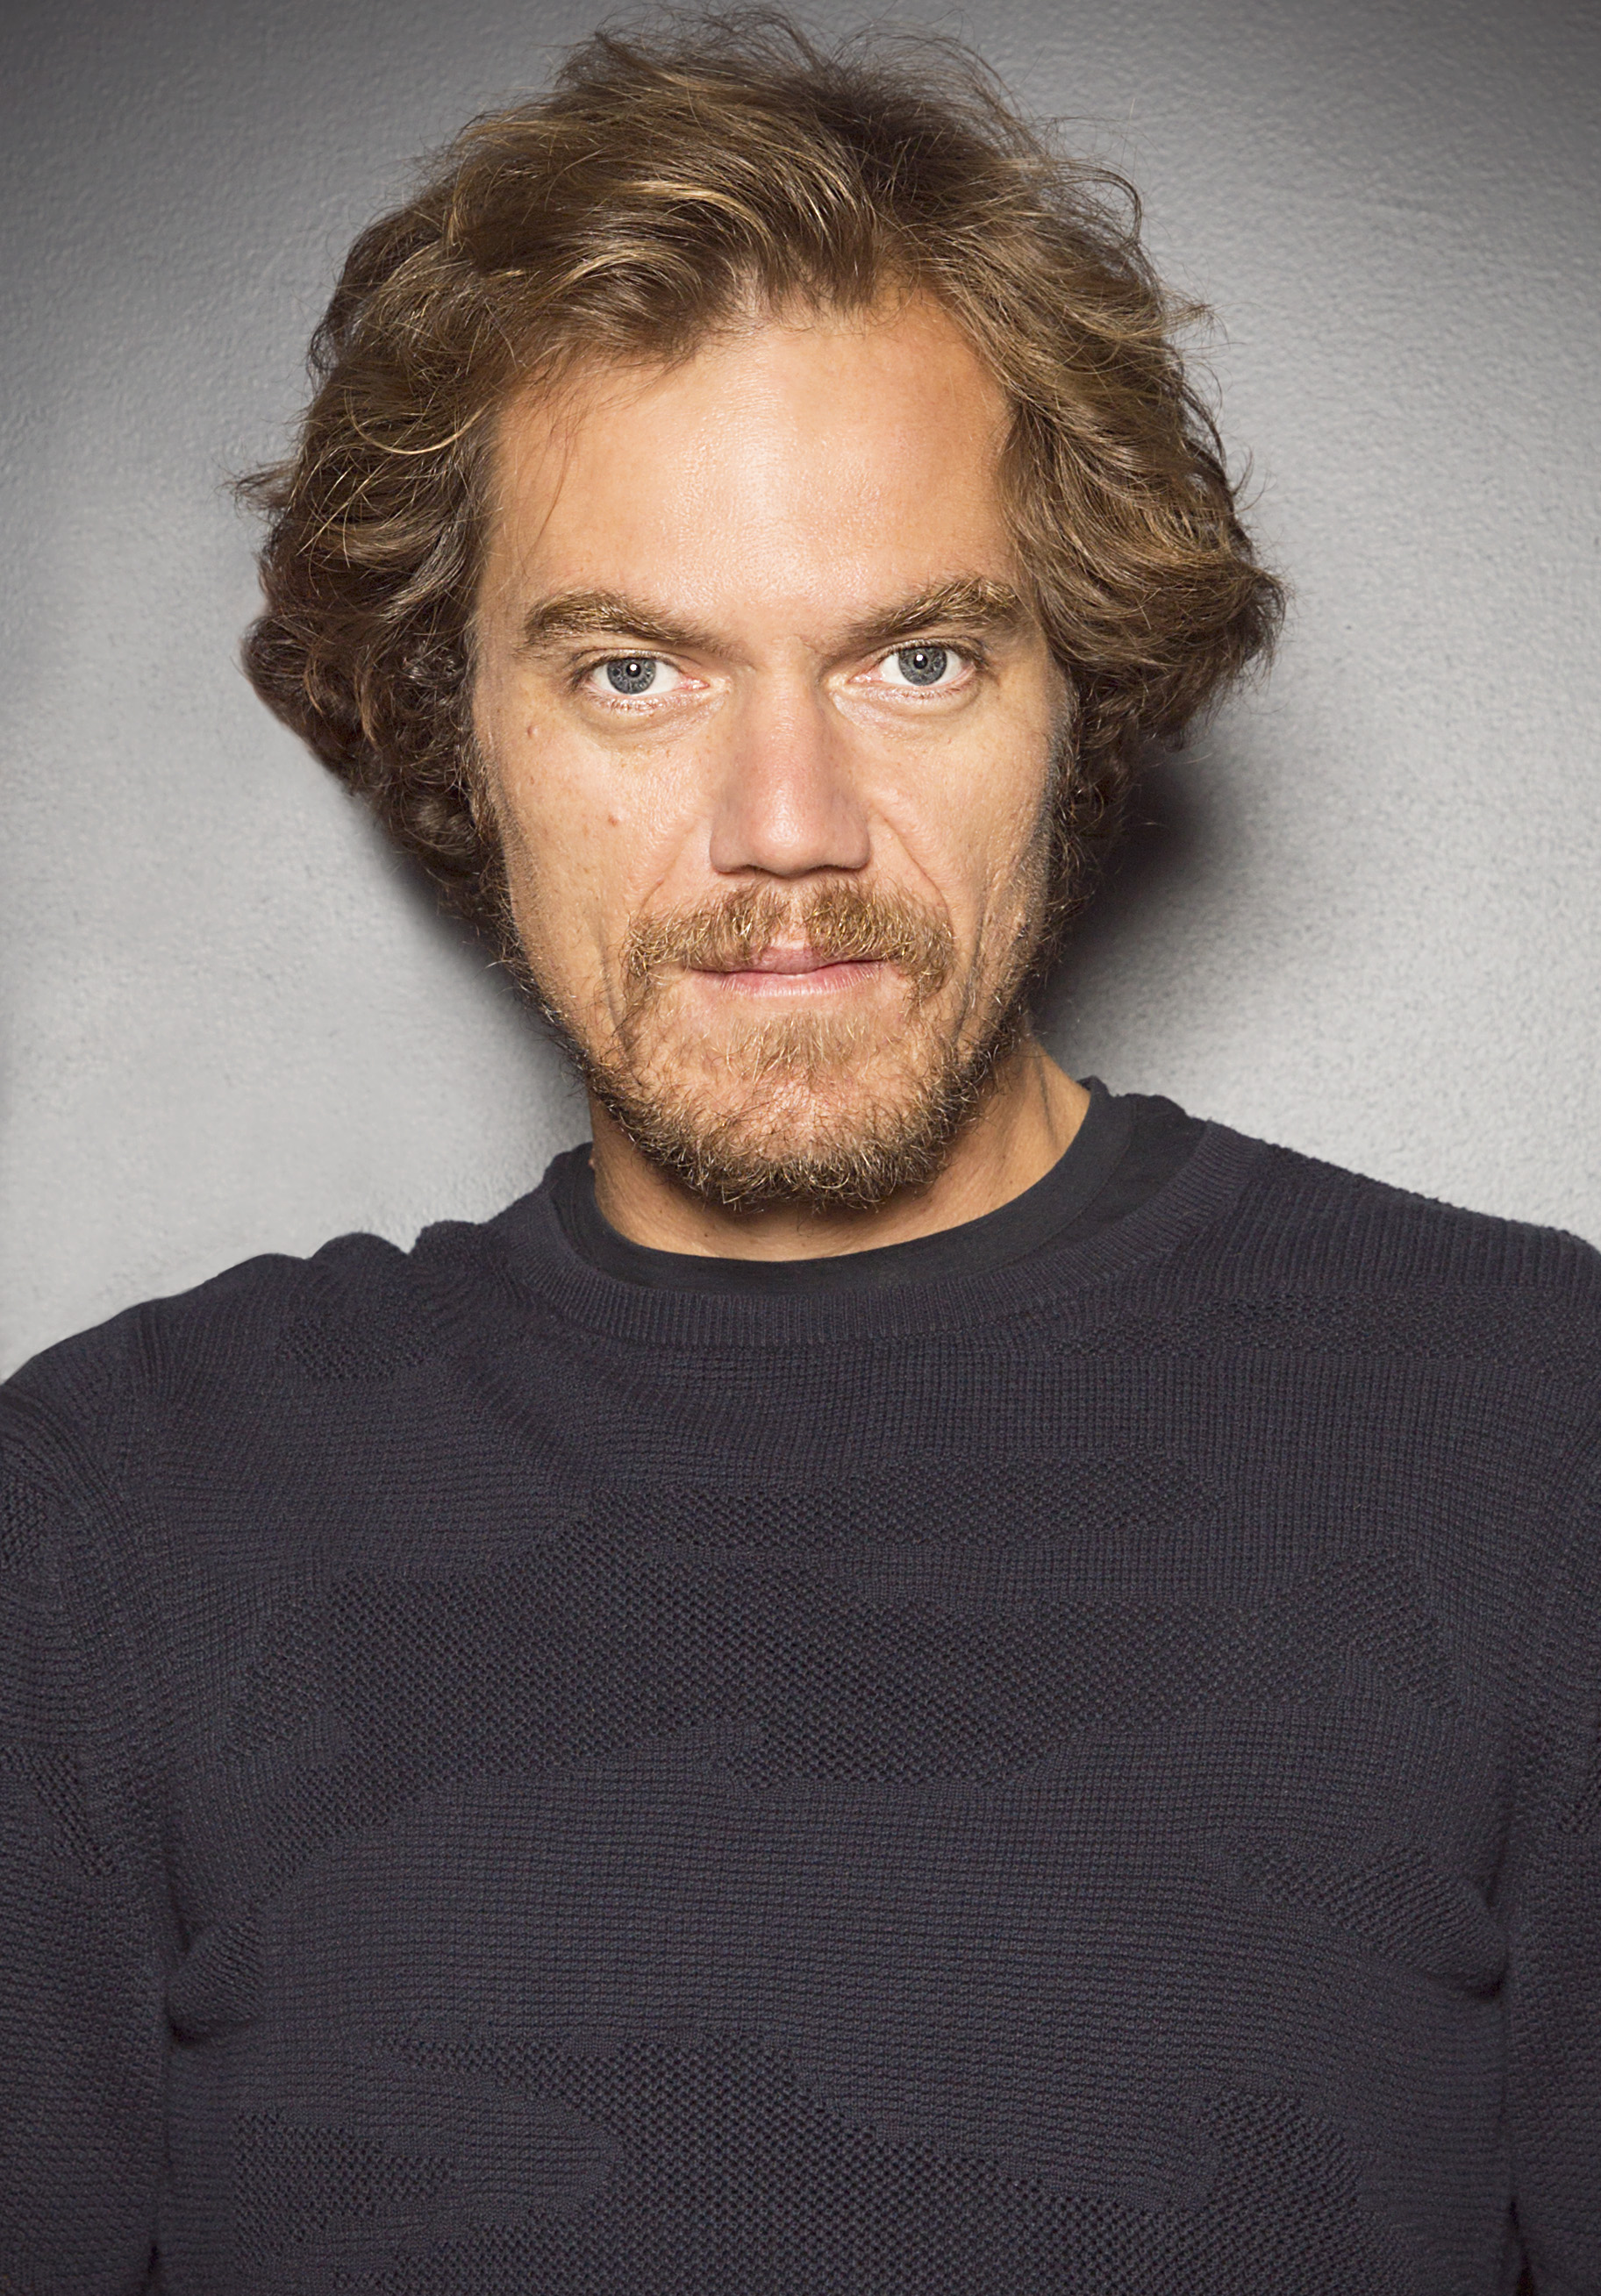 Portrait of actor Michael Shannon